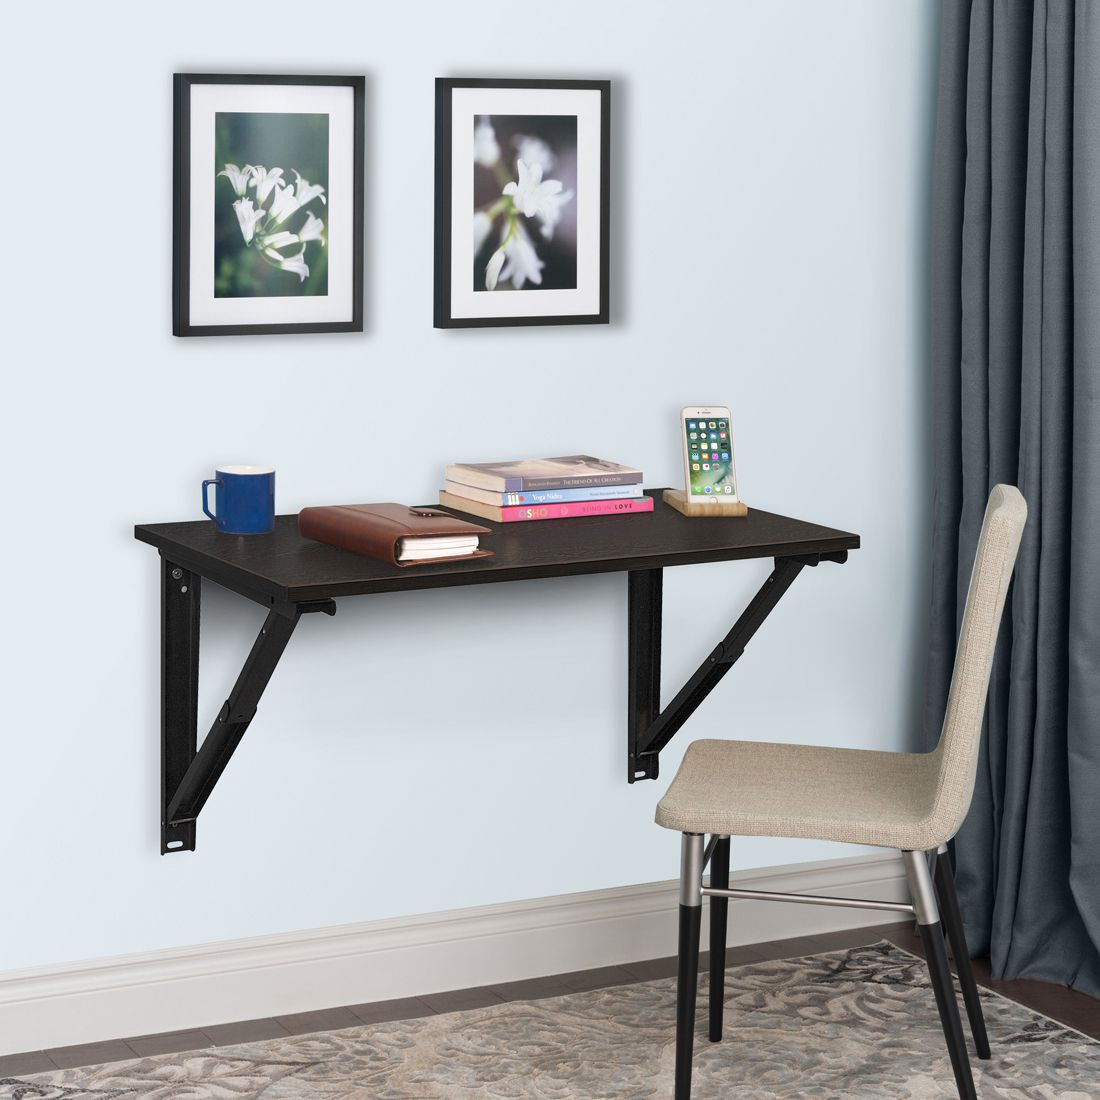 32 inches Wizard Folding Study/Laptop table Table Wenge Colour by Delite kom